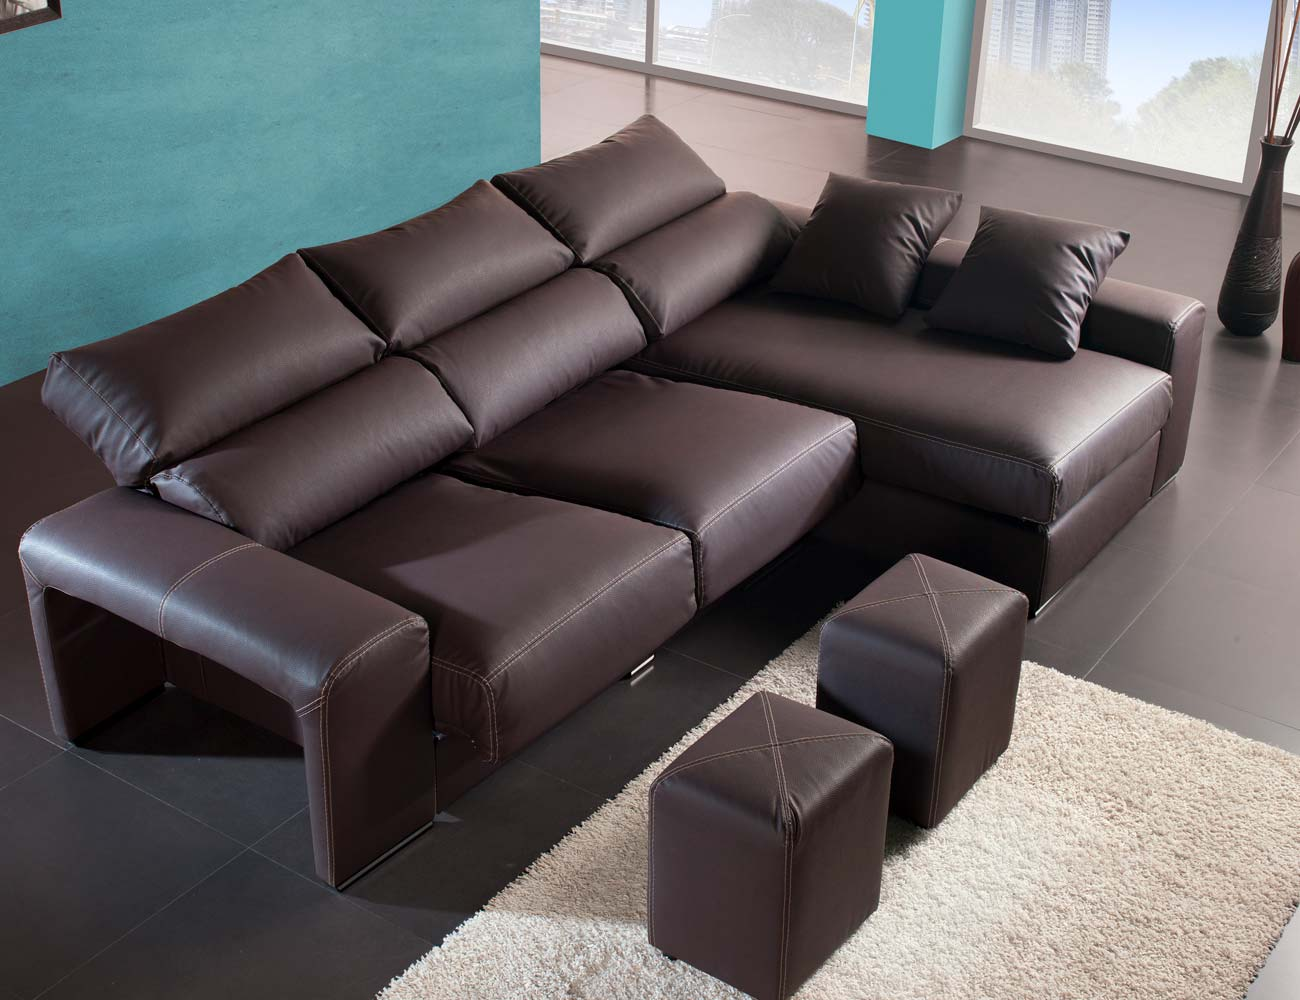 Sofa chaiselongue moderno polipiel chocolate poufs taburetes5